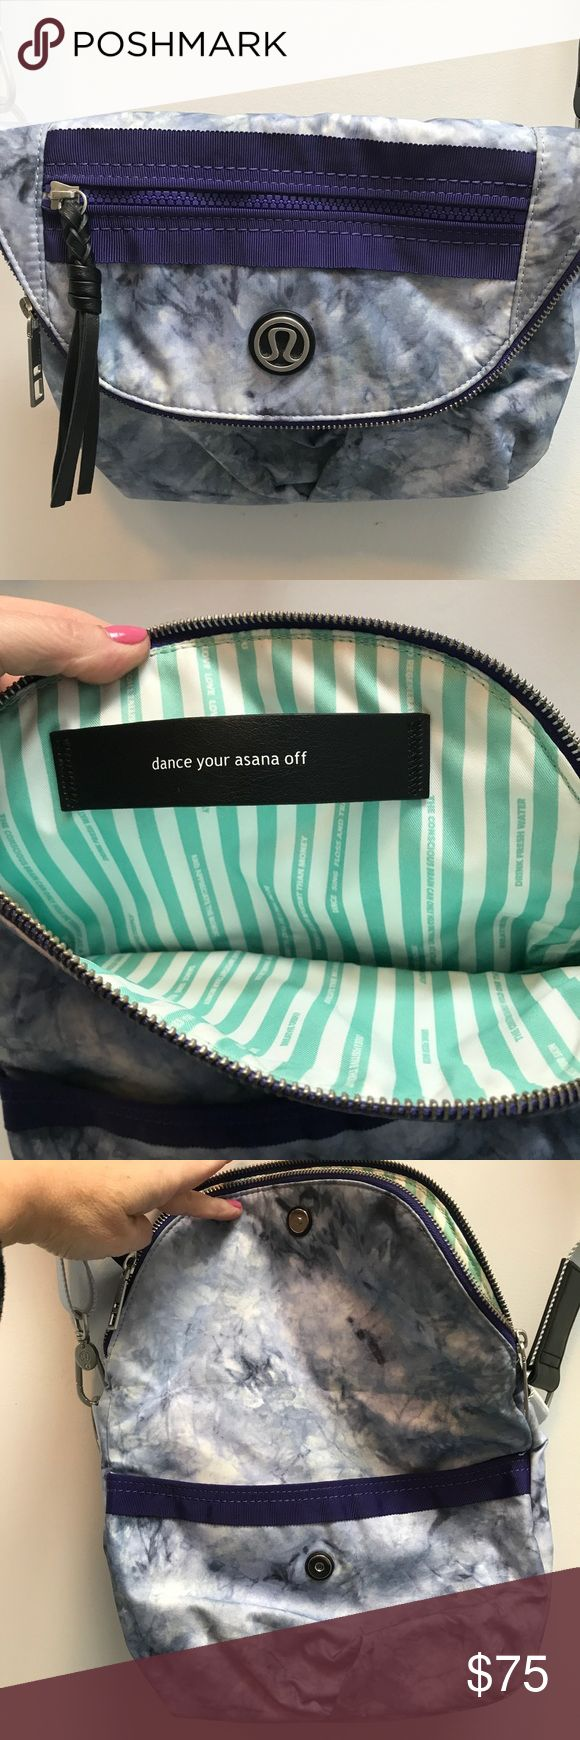 """Lululemon Crossbody Bag Dance Your Asana Off Brand new without tags. The color is purple the inside has words like love dance travel drink fresh water.  Pocket in the front and back  unzip to find a huge inside with another zip pocket and a mesh one  strap is adjustable.  Length folded is 9""""  unfolded is 14""""  acrossis about 11""""  the strap drop as shown in the pictures is 15"""" lululemon athletica Bags Crossbody Bags"""